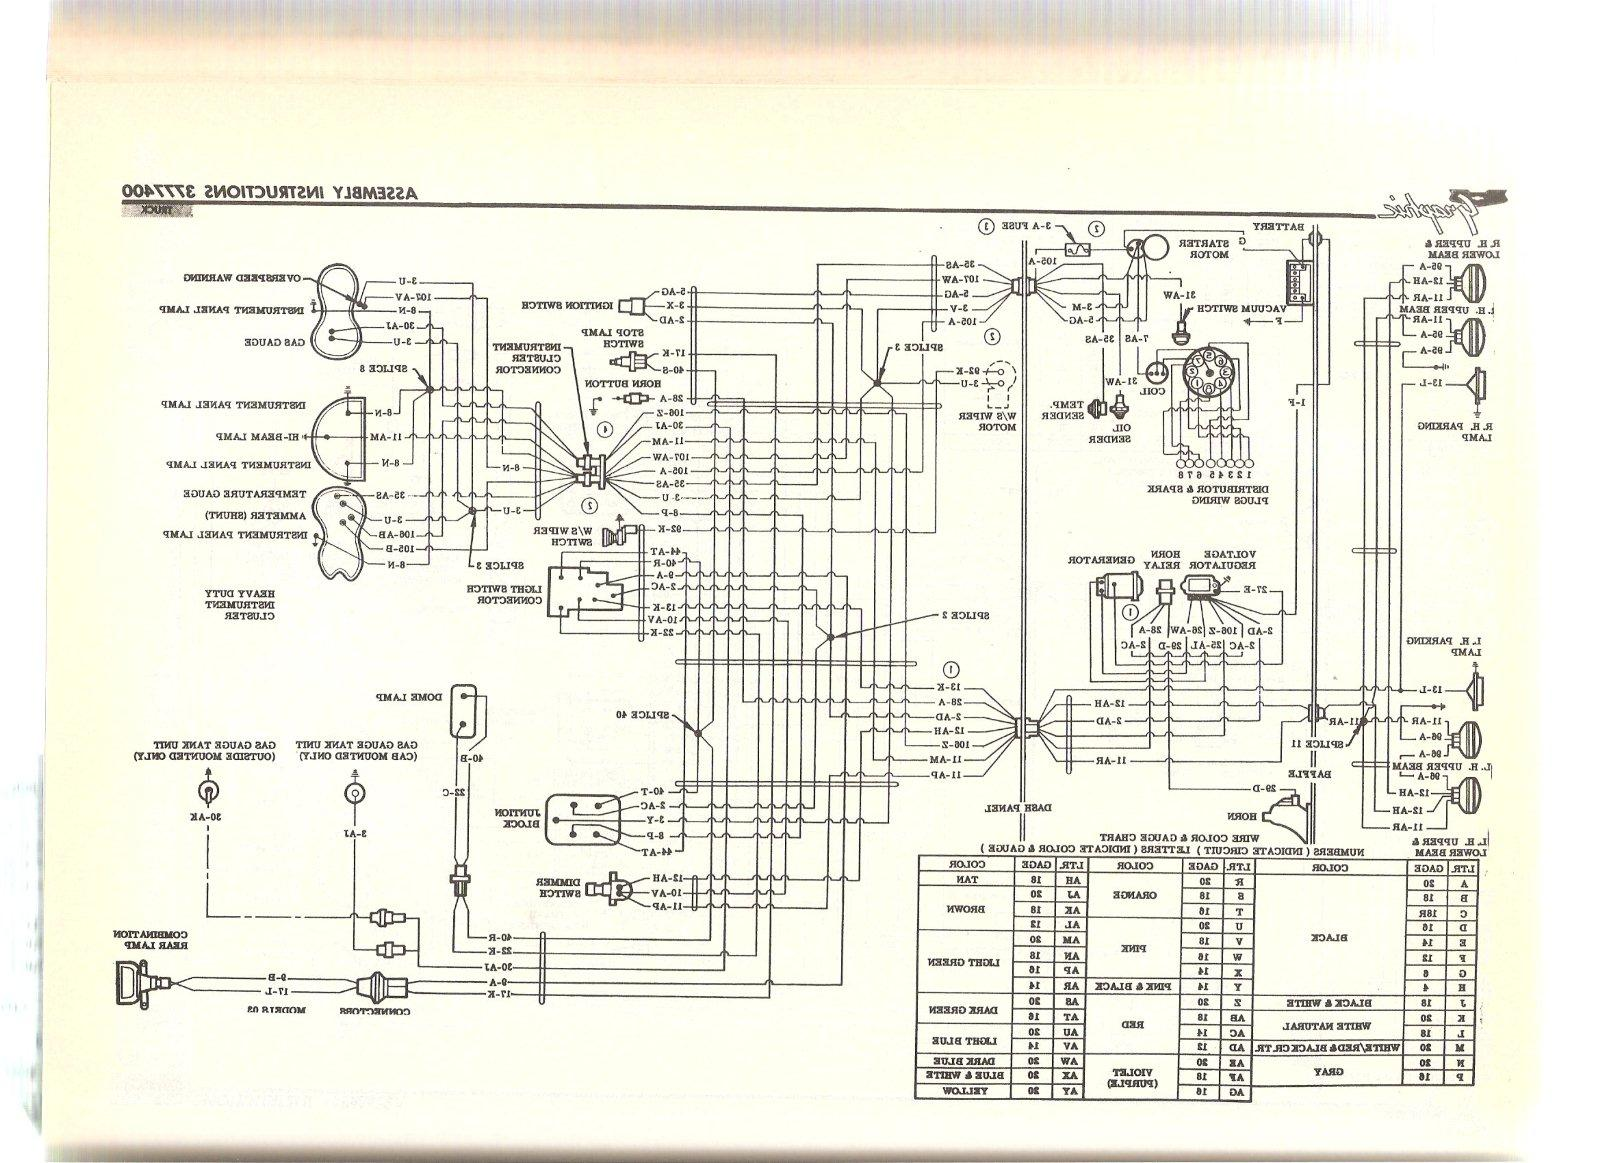 Wiring Diagrams 1941 Lincoln Zephyr Diy 1942 Dodge Diagram Heeyoung S Blog With The Rh Jeff Gordon Dupont1013 Blogspot Com 1937